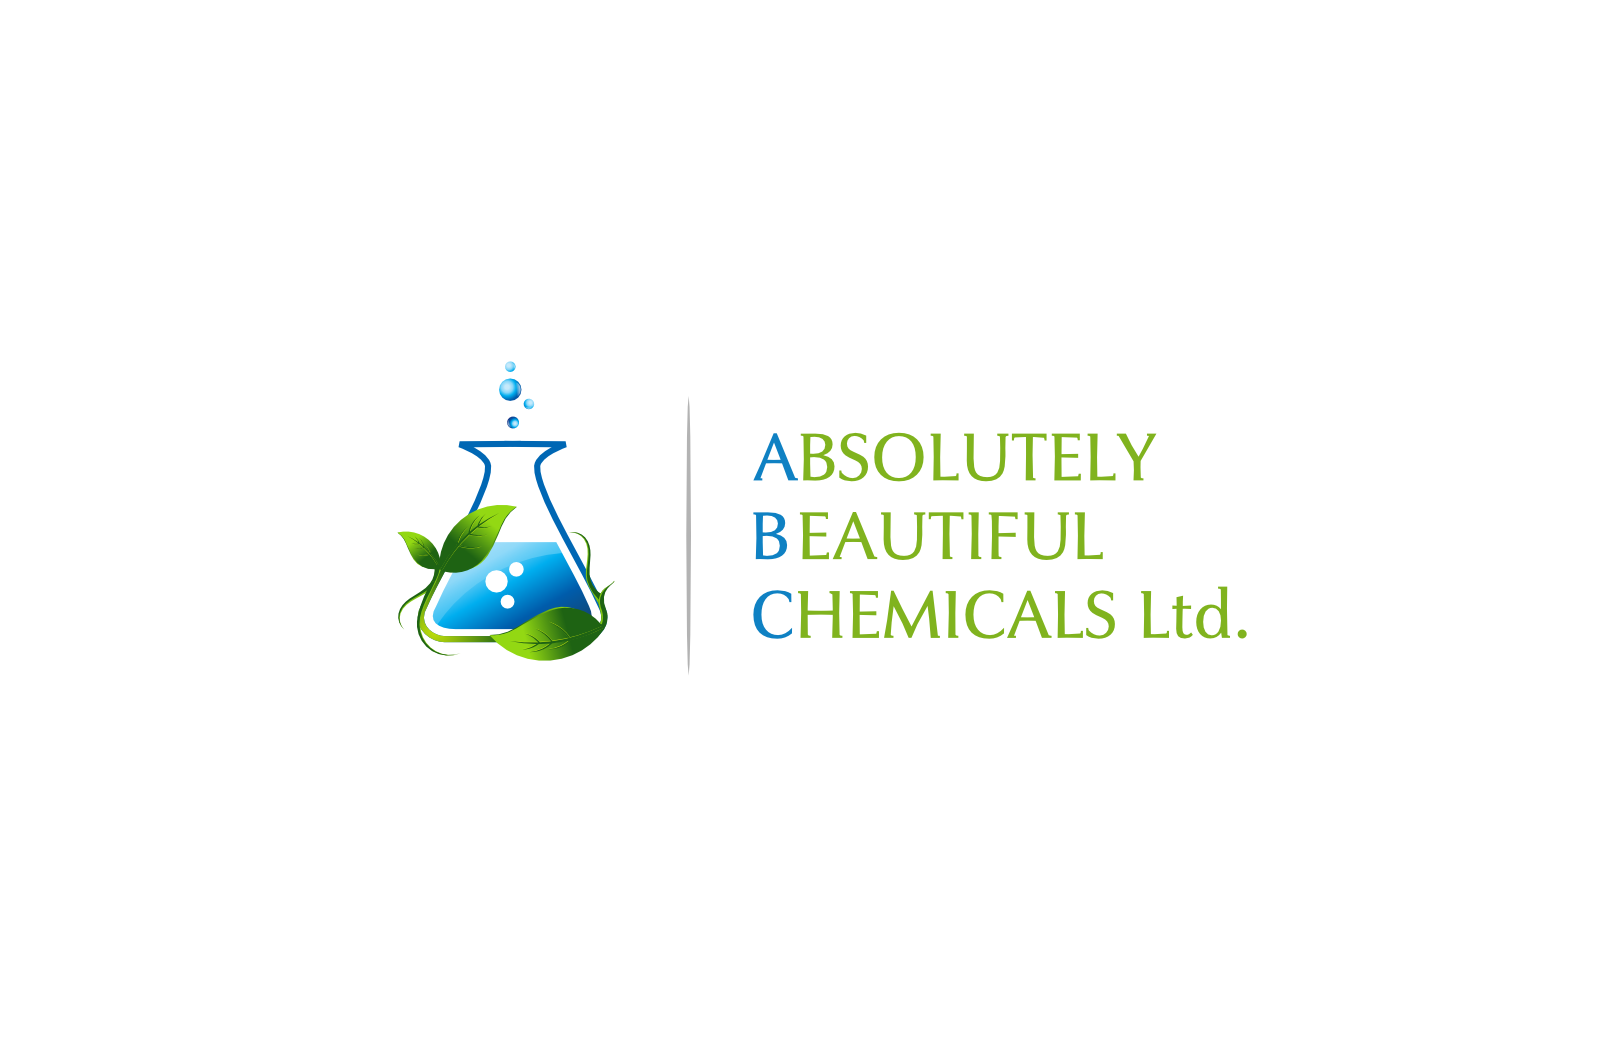 Create the next logo for Absolutely Beautiful Chemicals Ltd.